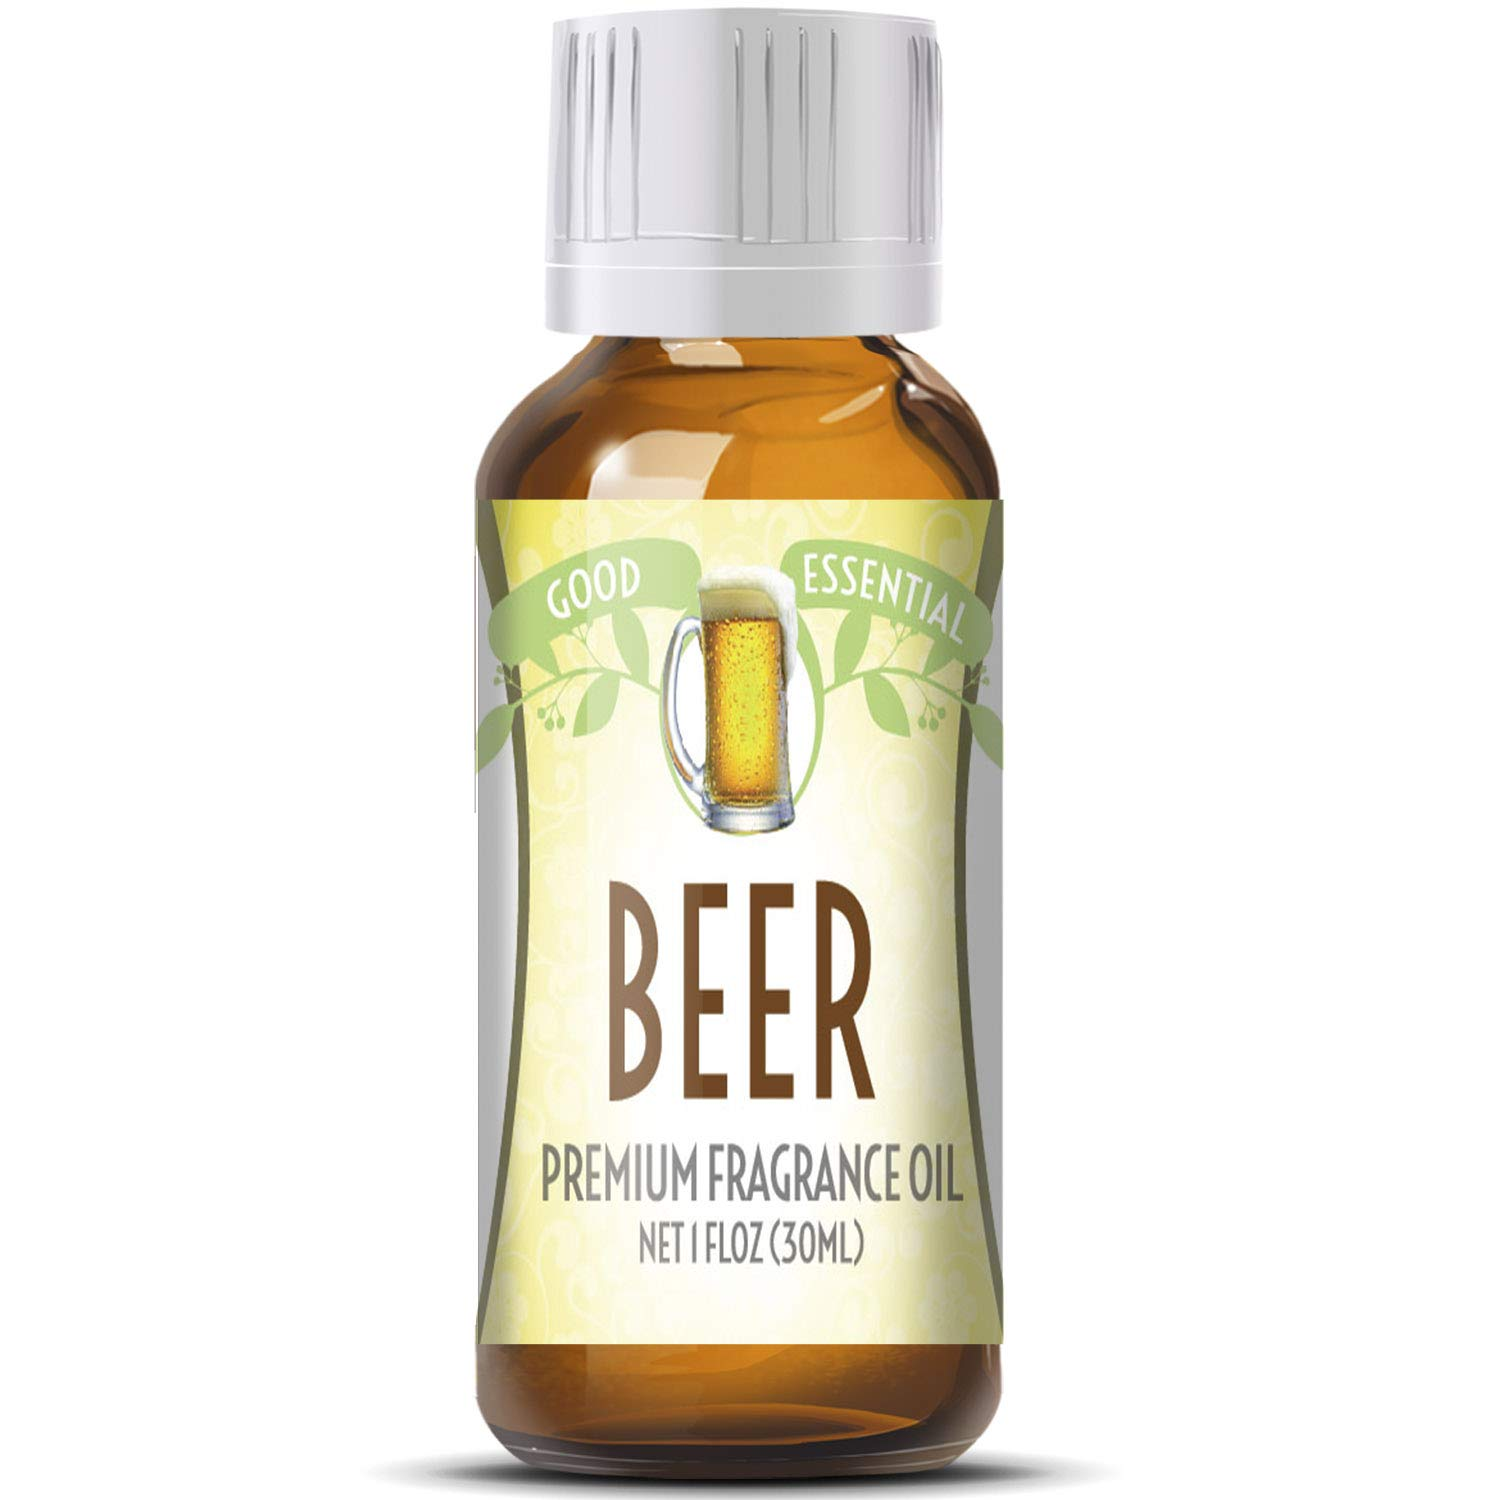 Beer Scented Oil by Good Essential (Huge 1oz Bottle - Premium Grade Fragrance Oil) - Perfect for Aromatherapy, Soaps, Candles, Slime, Lotions, and More!